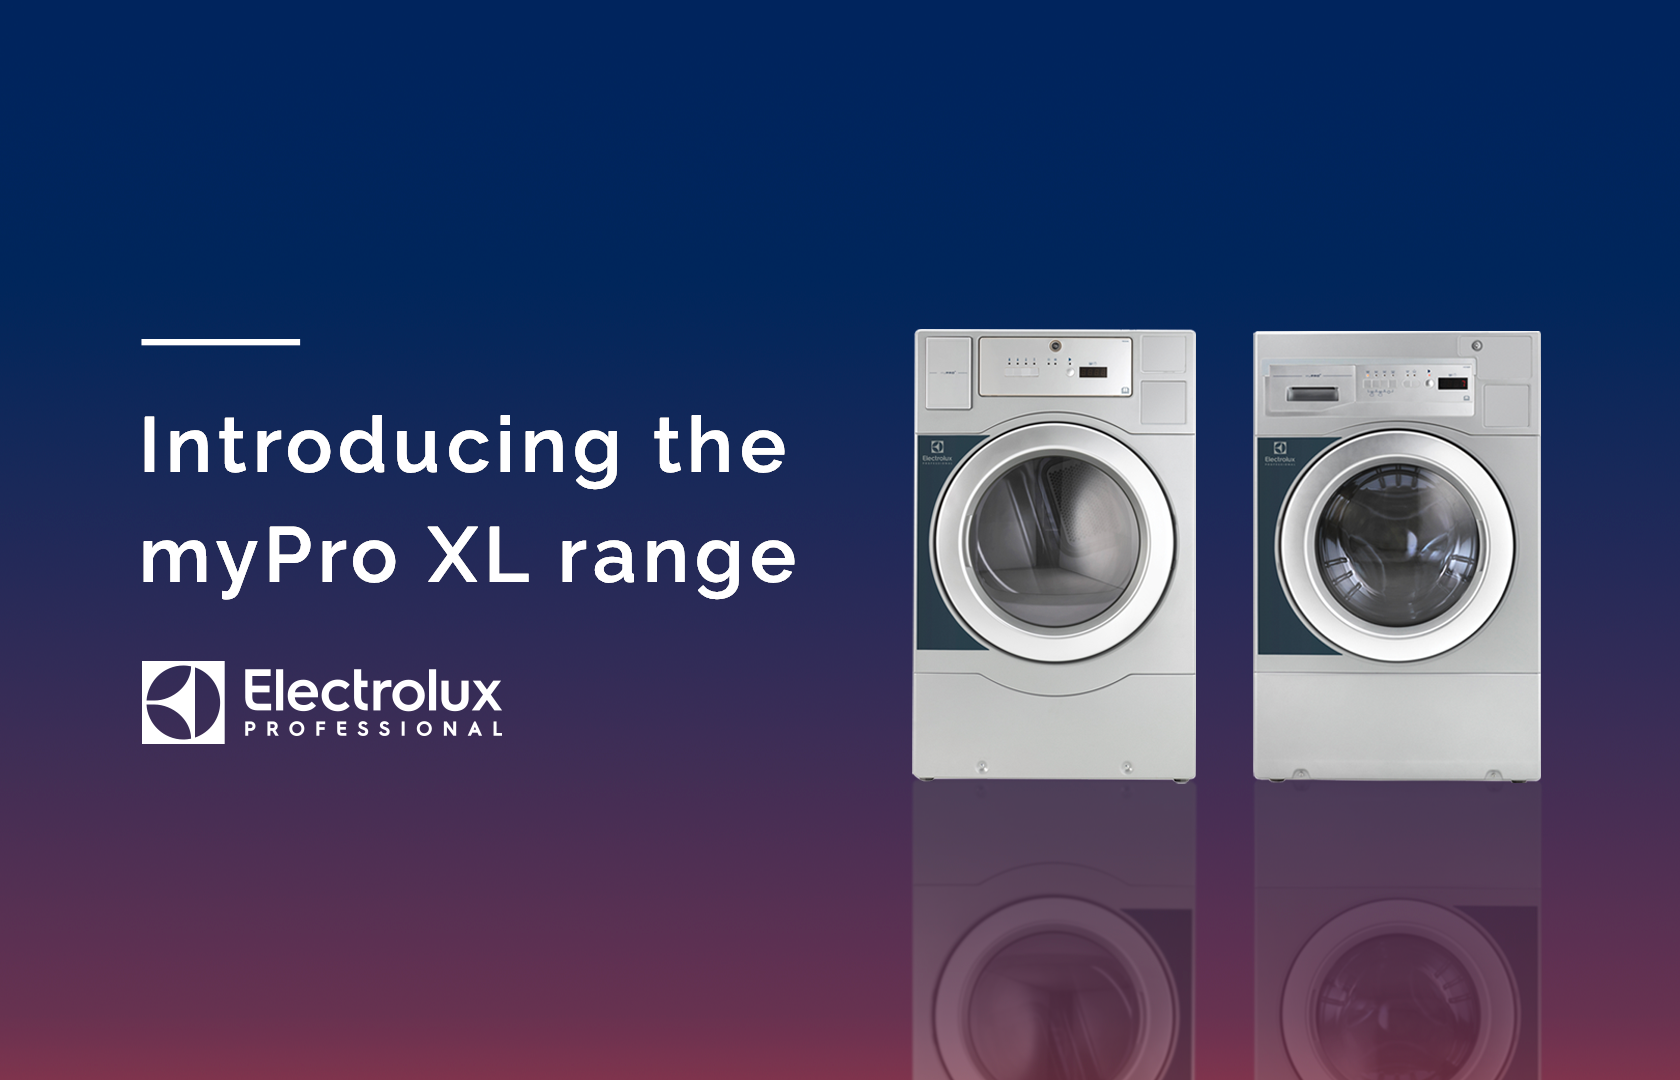 Blog post from Richard Jay on the myPro XL range by Electrolux Professional